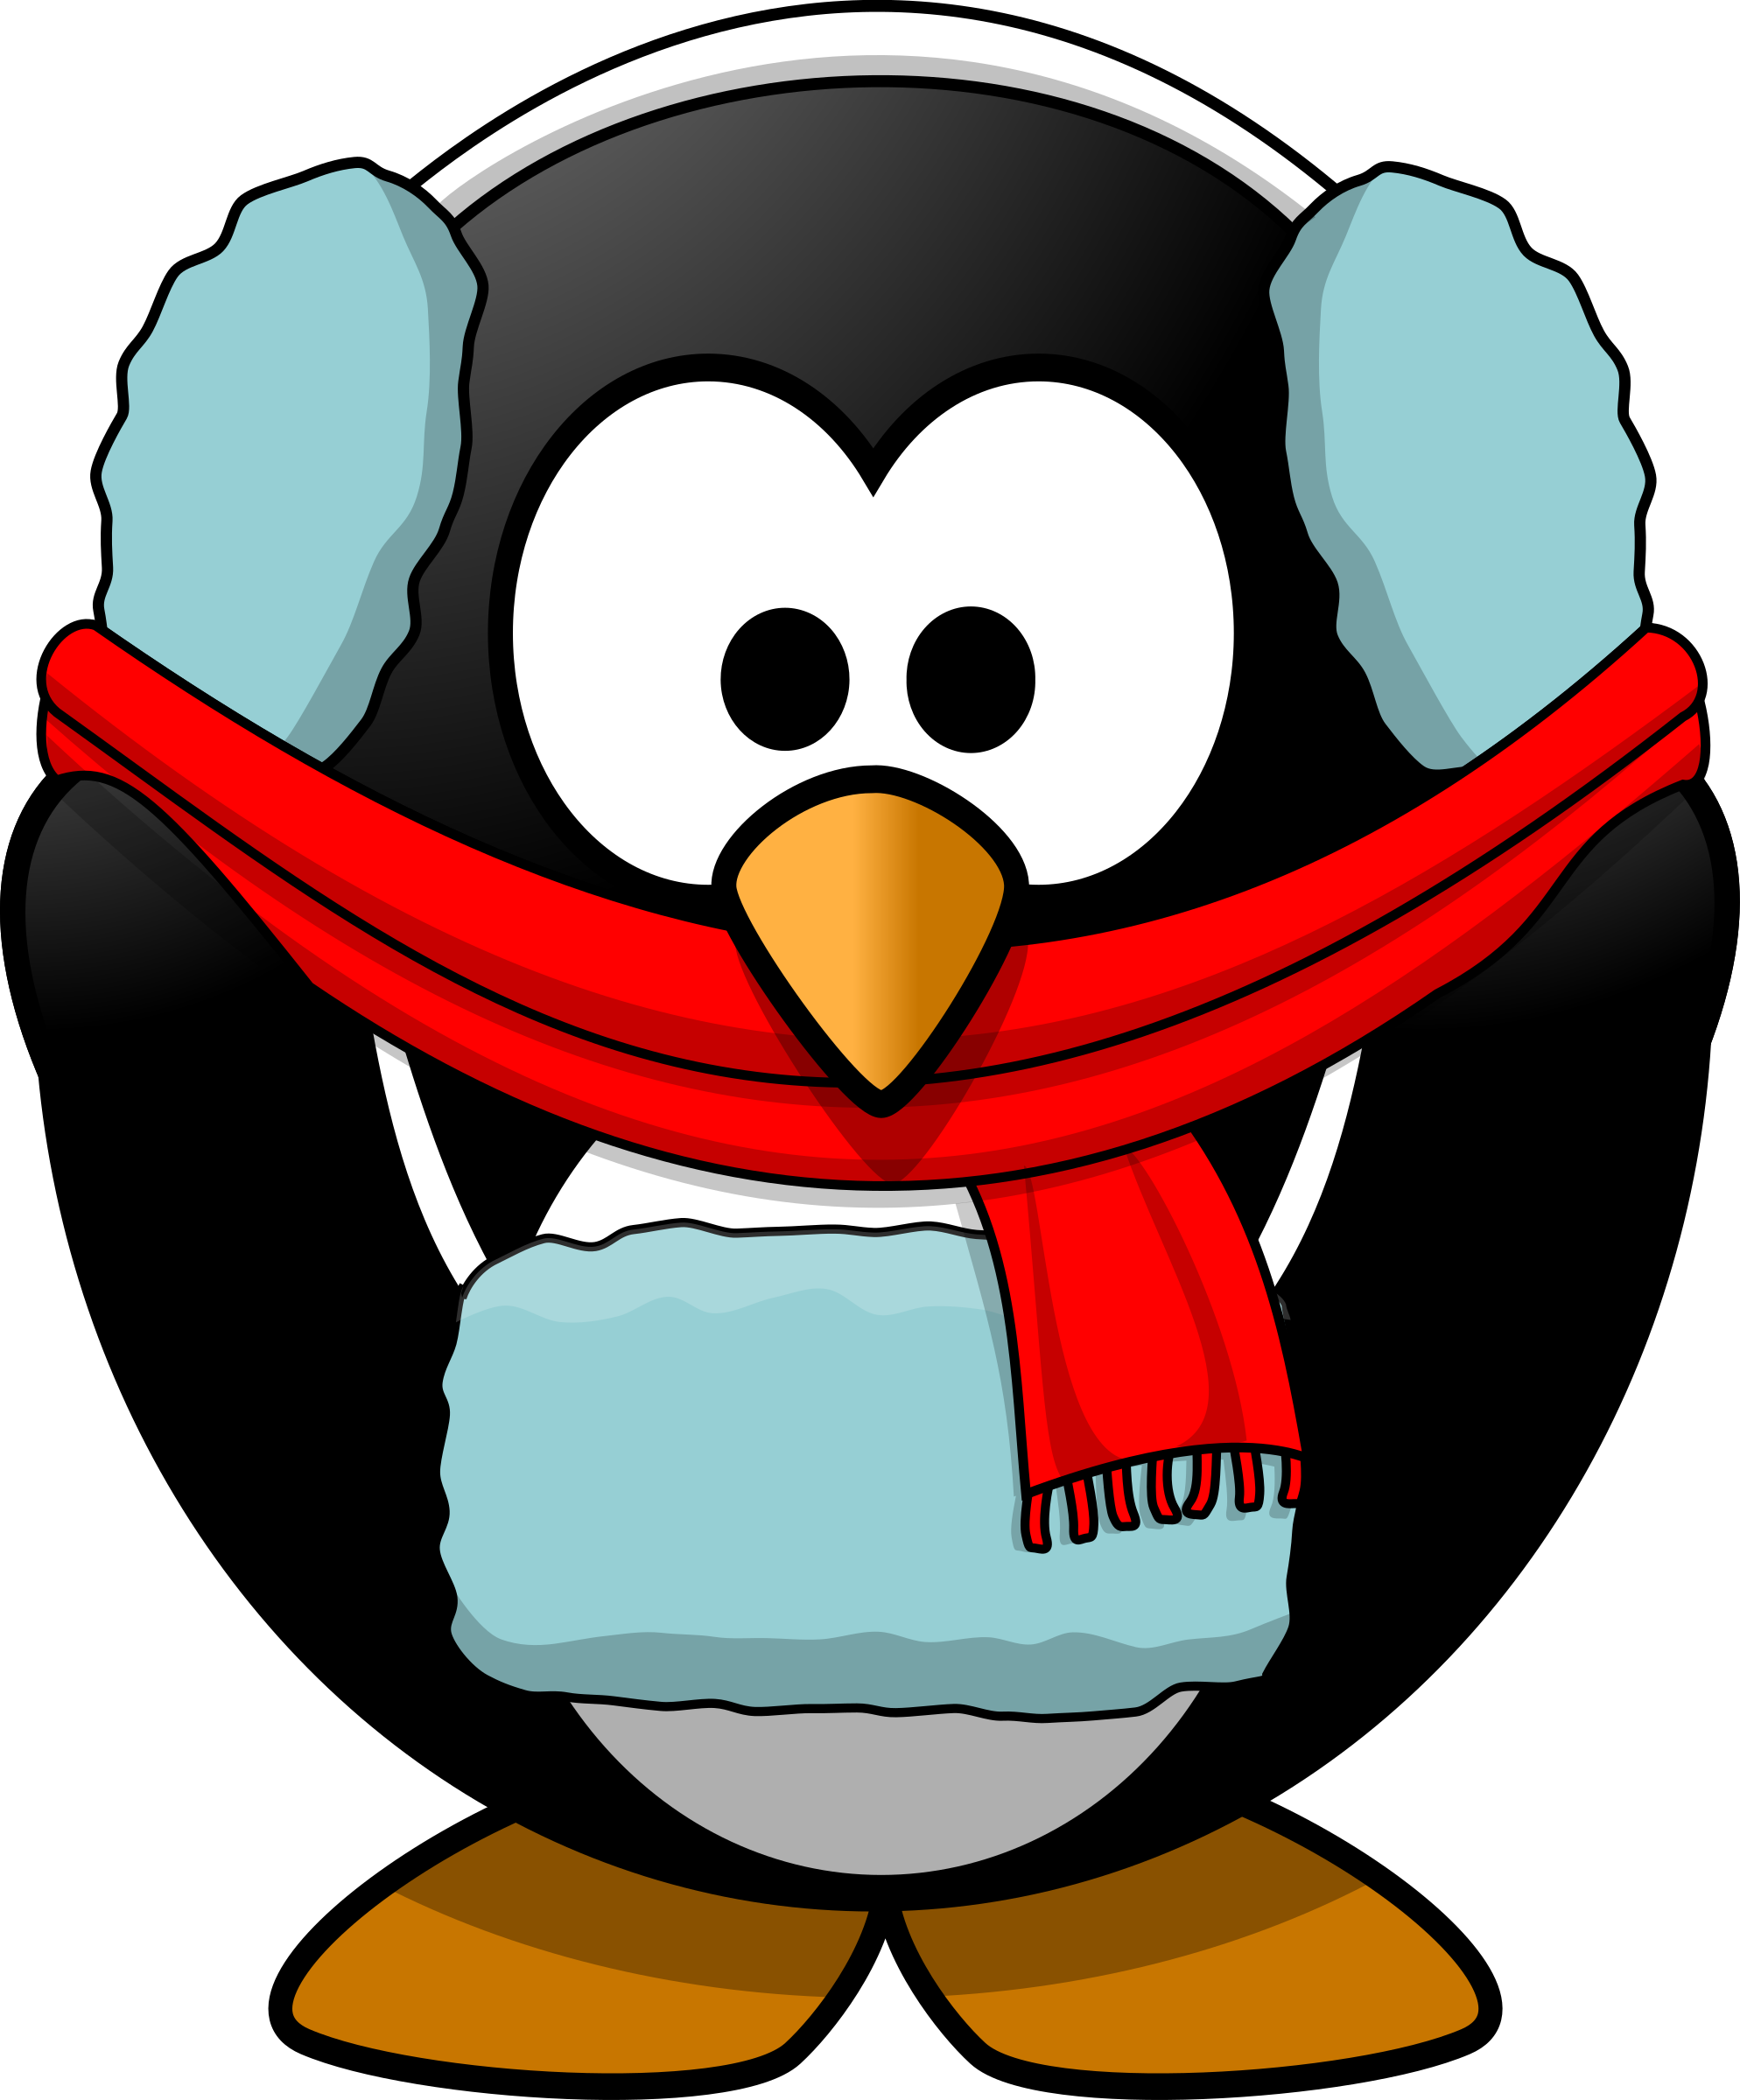 Freezin' Penguin by Moini